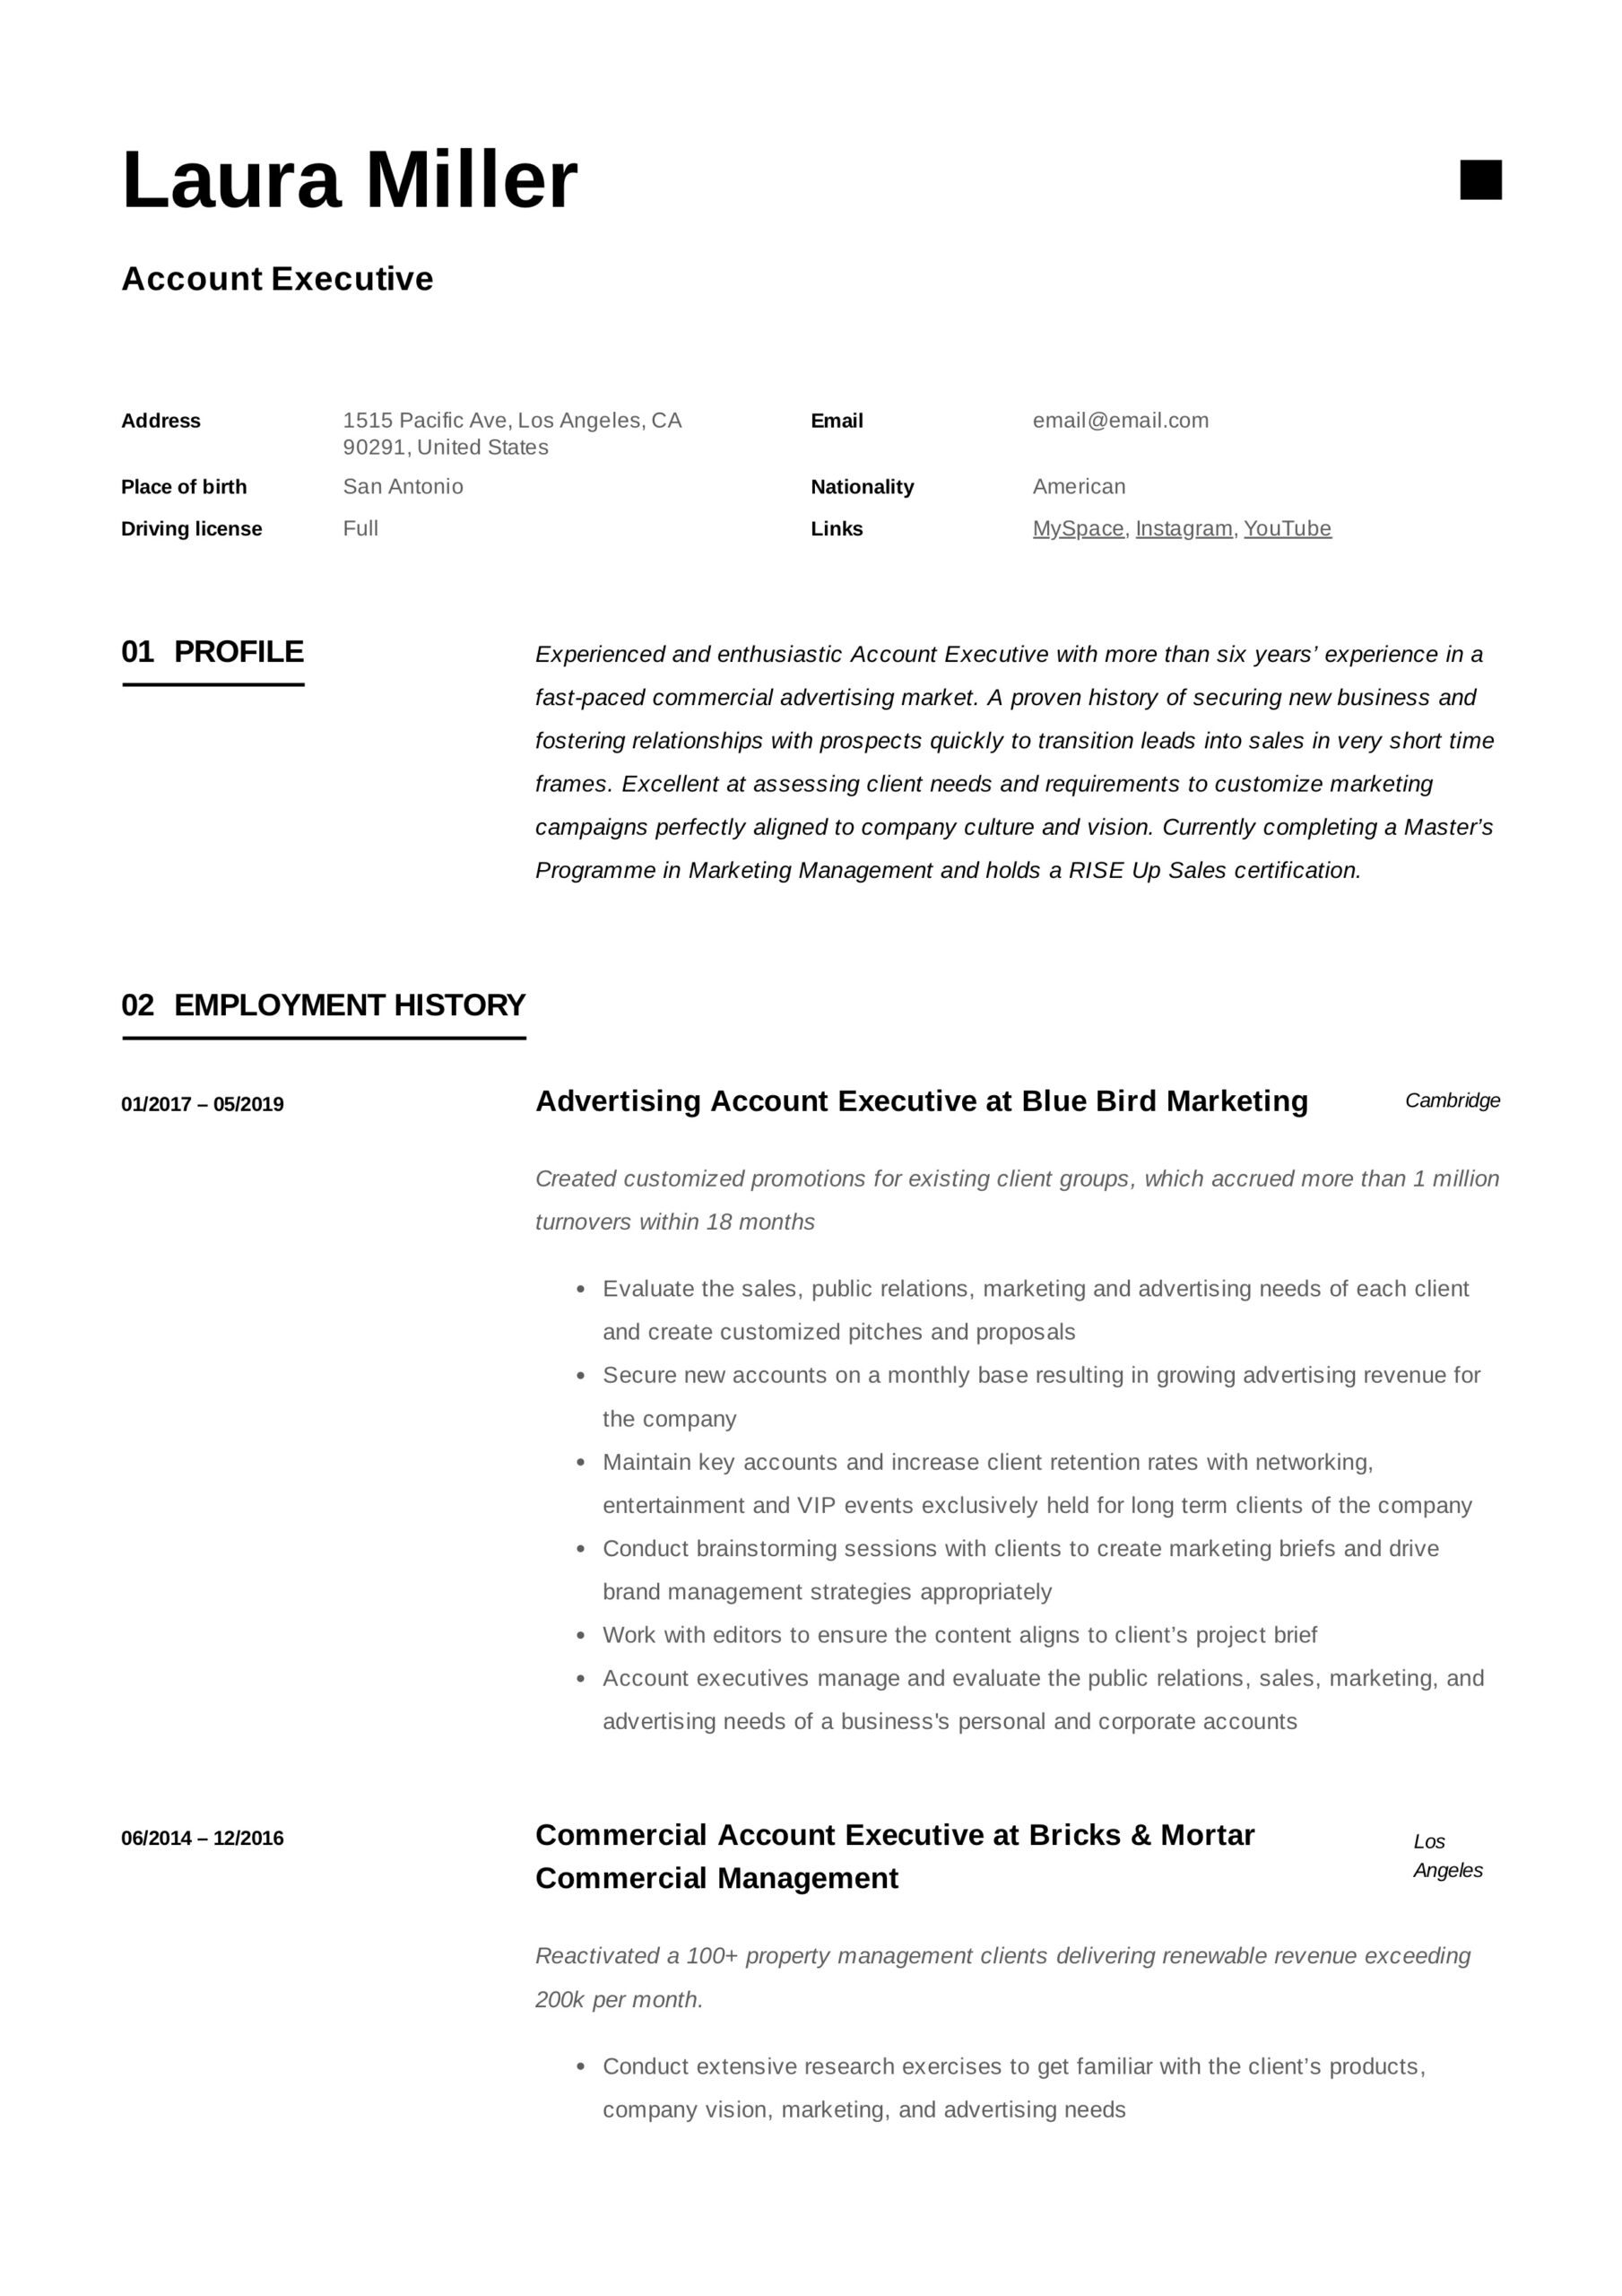 account executive resume writing guide templates pdf examples example direct care Resume Account Executive Resume Examples